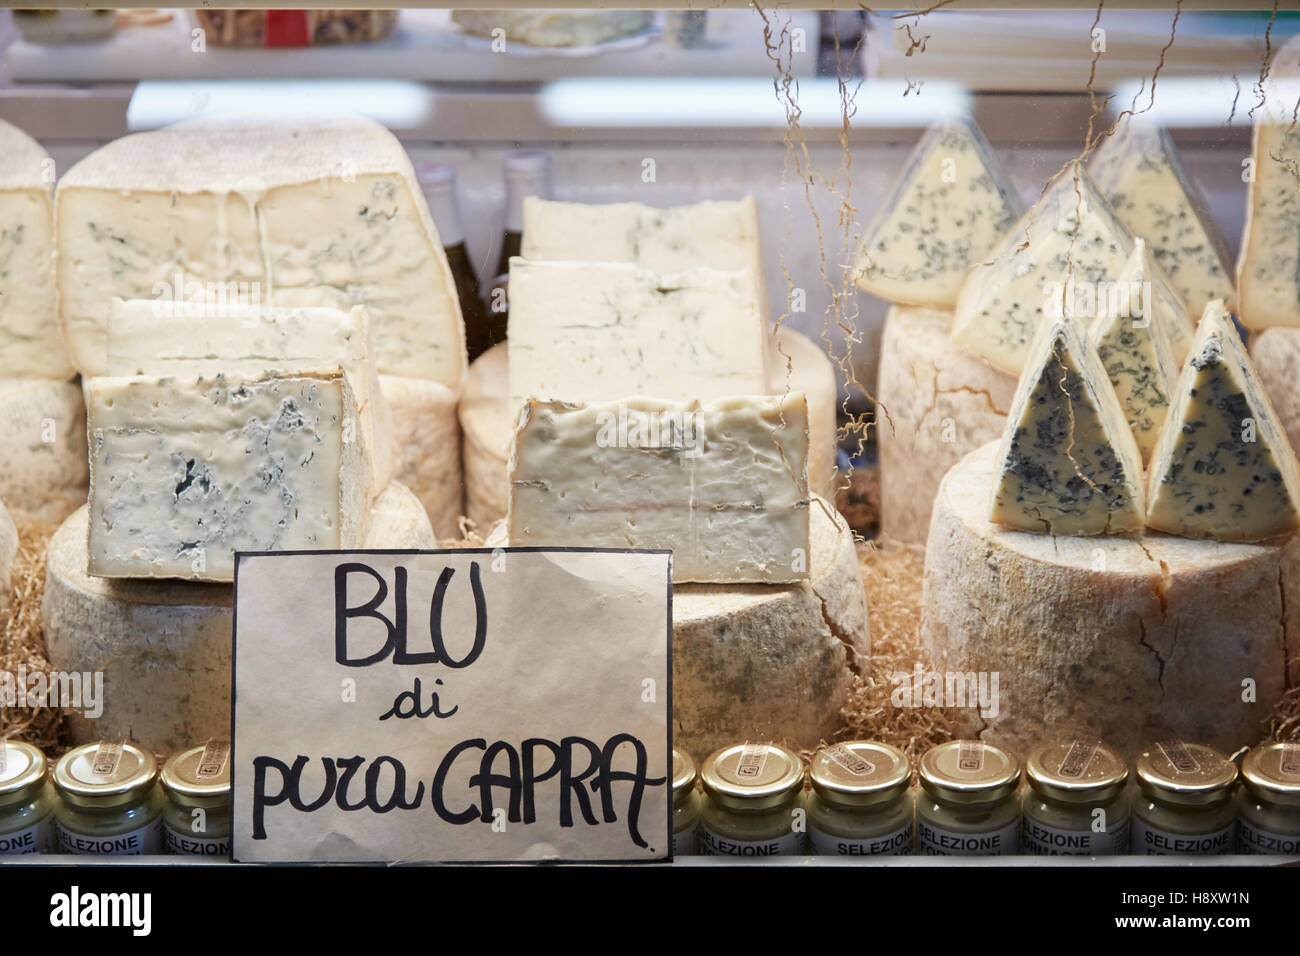 Blu goat cheese on sale during Alba White Truffle Fair in Alba, Italy - Stock Image